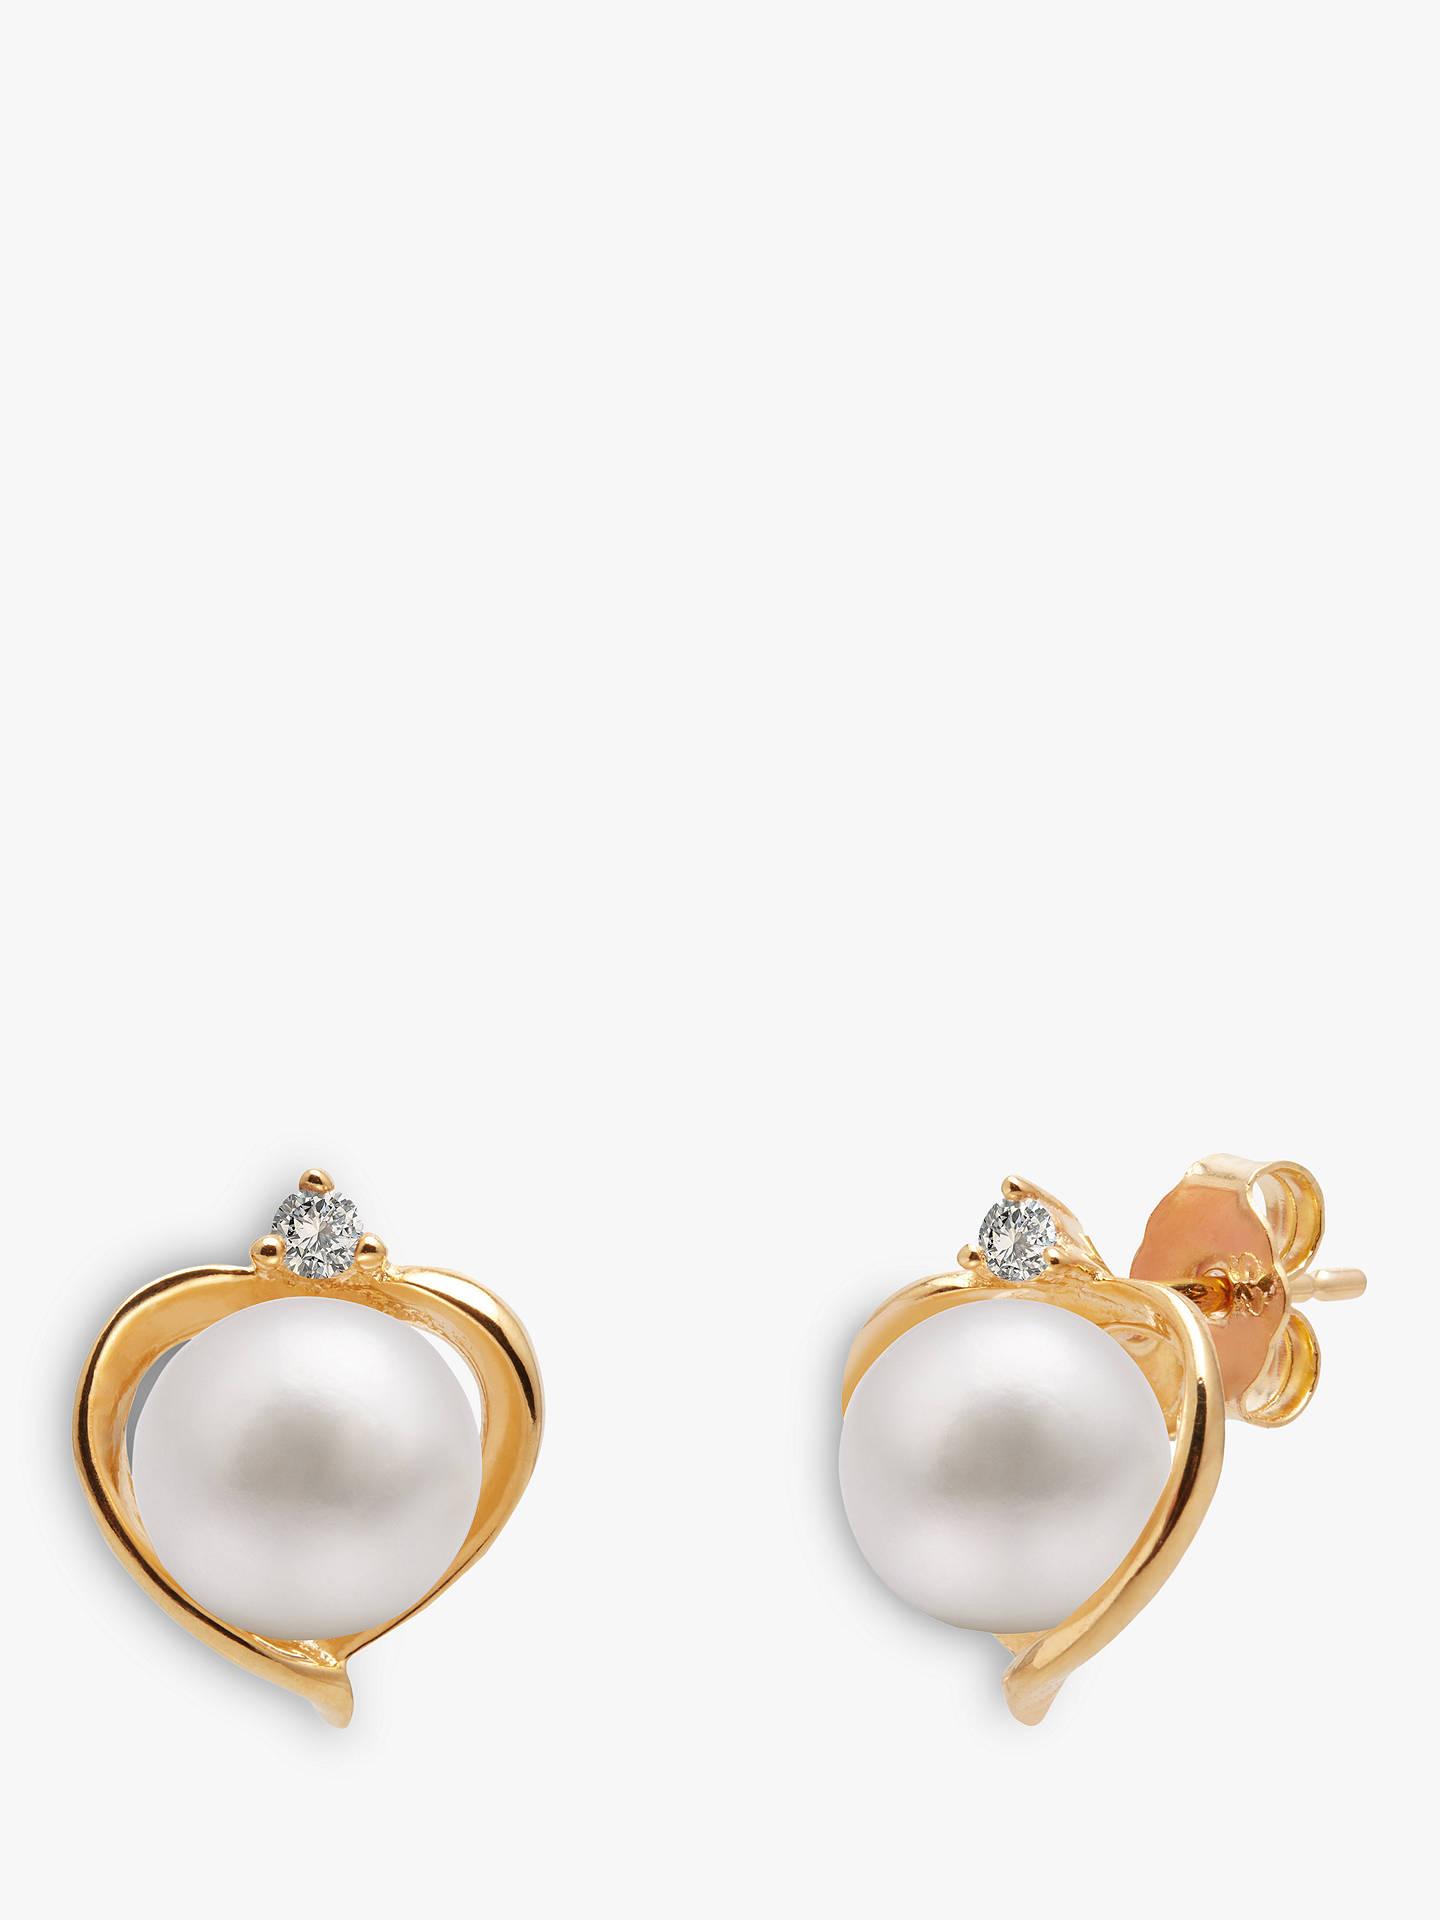 Buy A B Davis 9ct Gold Freshwater Pearl and Topaz Heart Stud Earrings, White Online at johnlewis.com